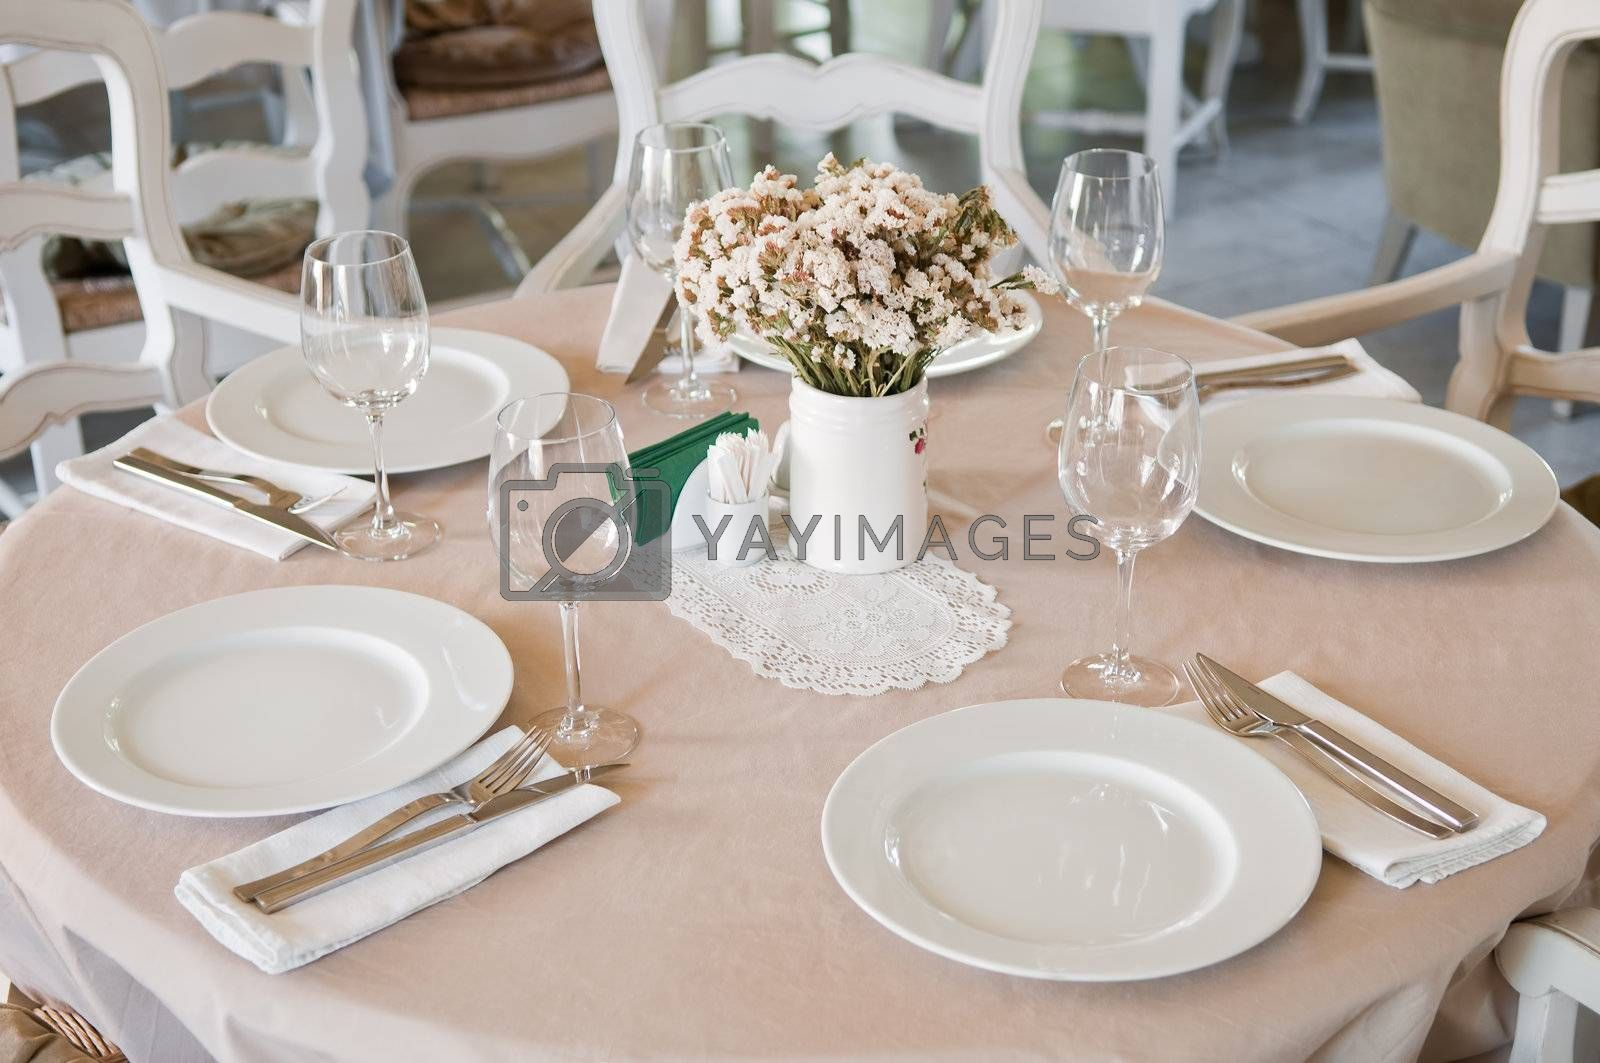 Royalty free image of Fine Crystal Table Setting at a Restaurant by shivanetua